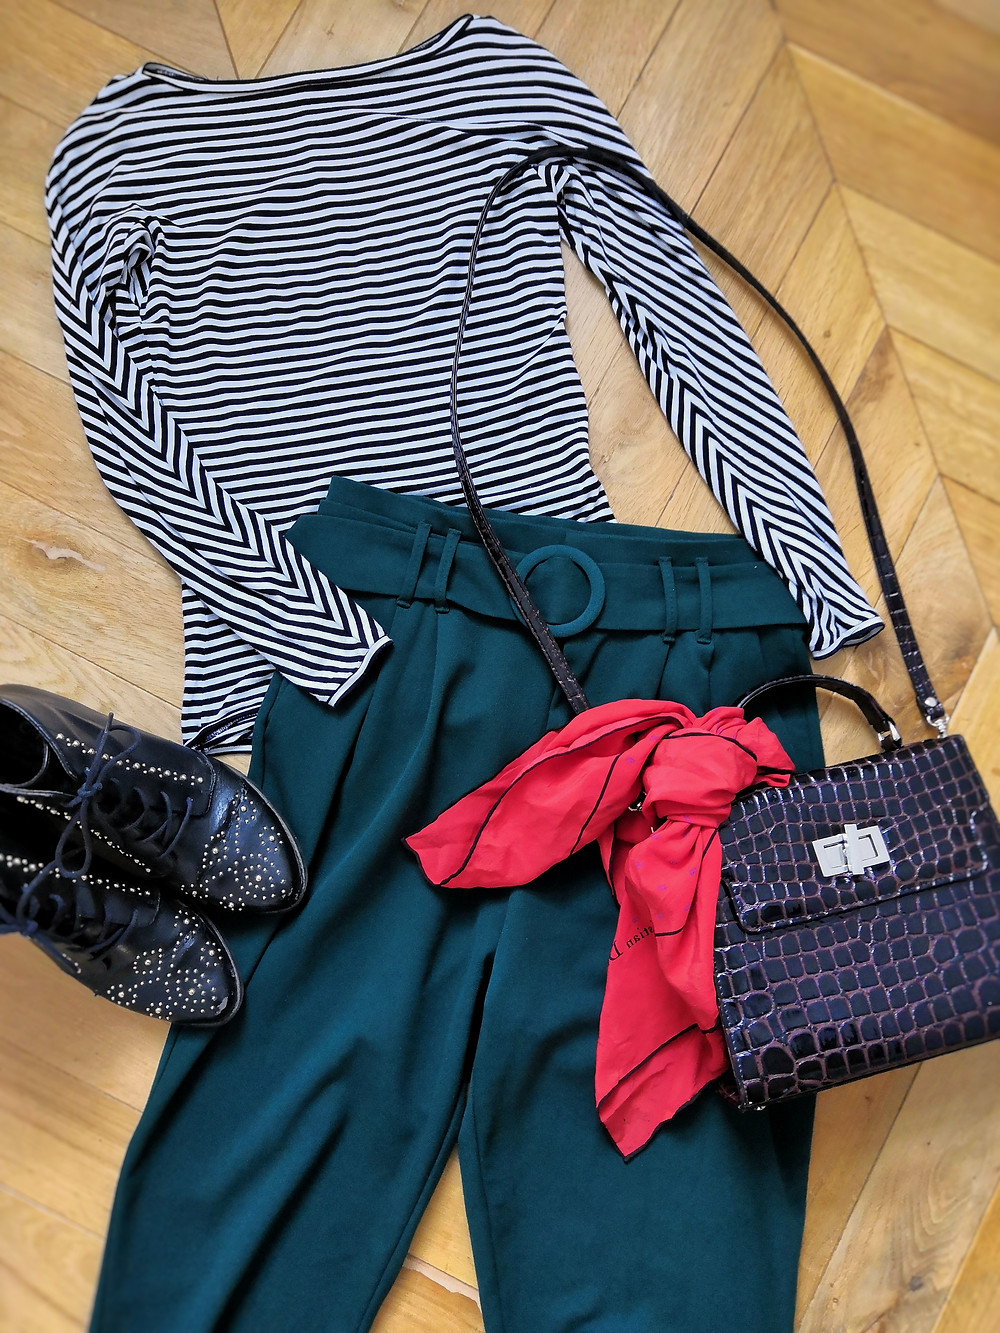 Flatlay outfit with stripy bodysuit, trousers, bag, scarf and boots